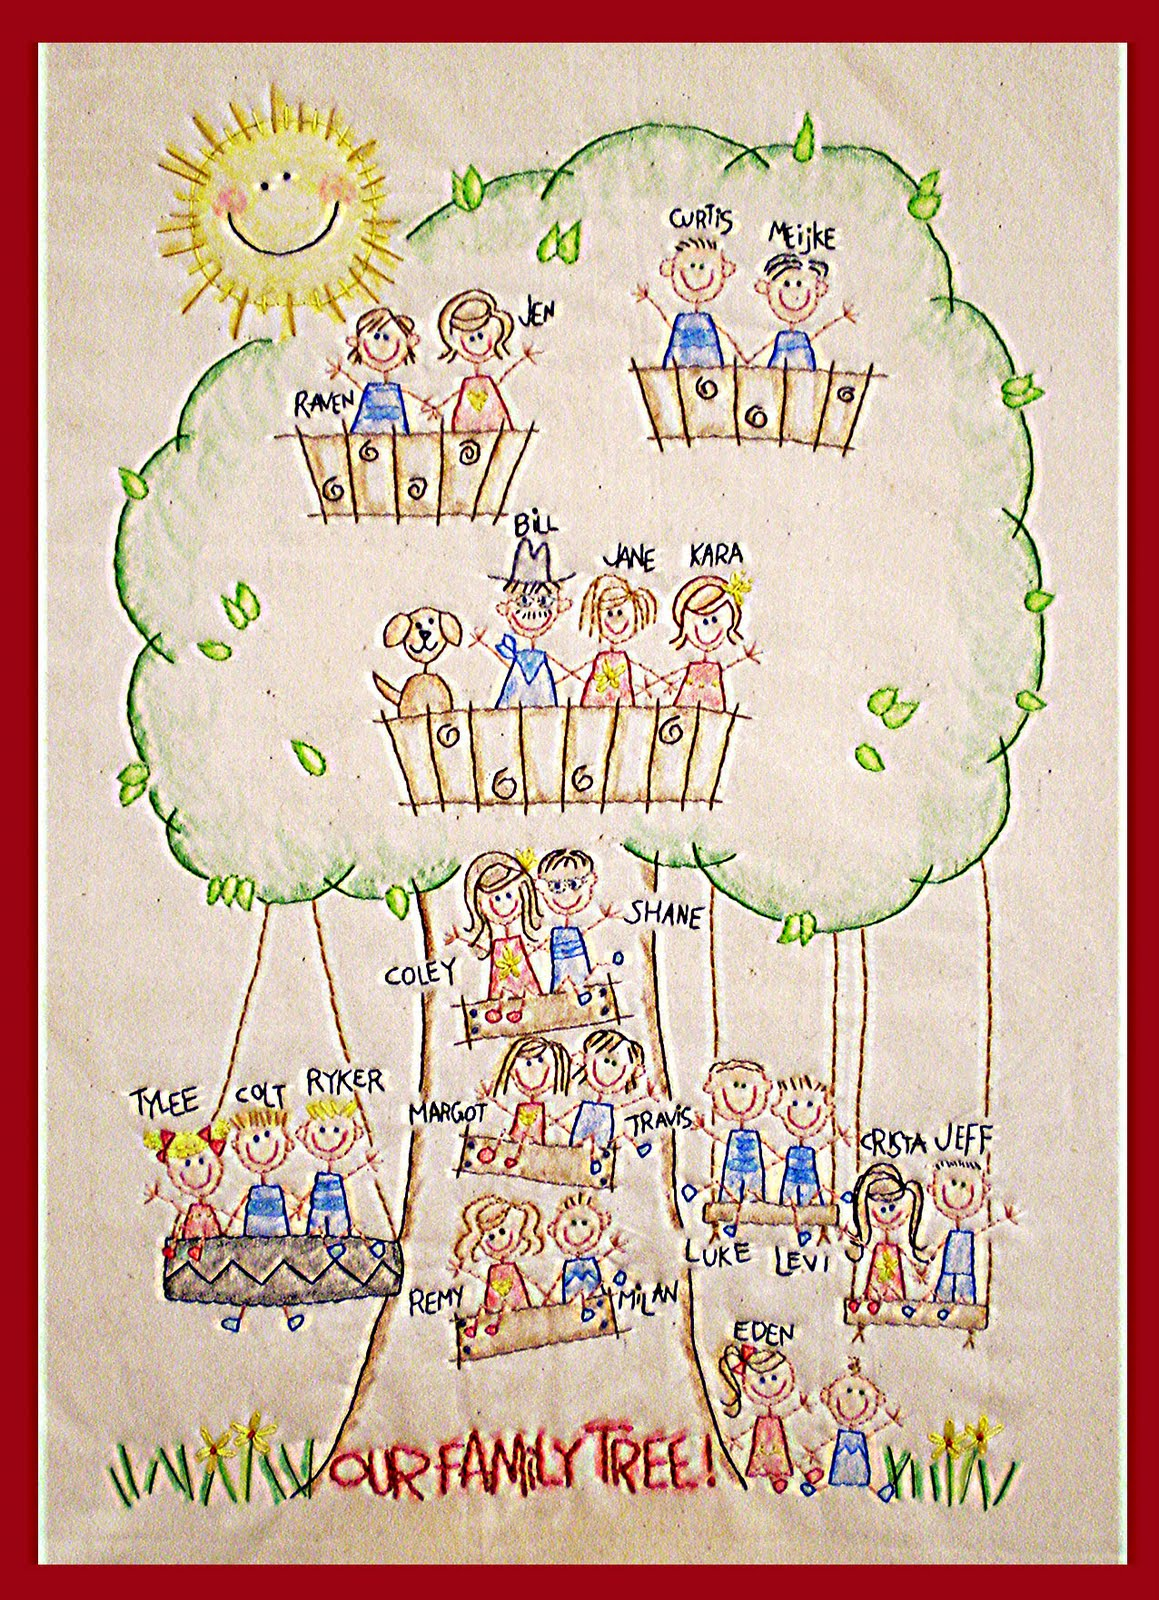 30  Great Creative Family Trees For for Creative Family Trees For Kids  131fsj